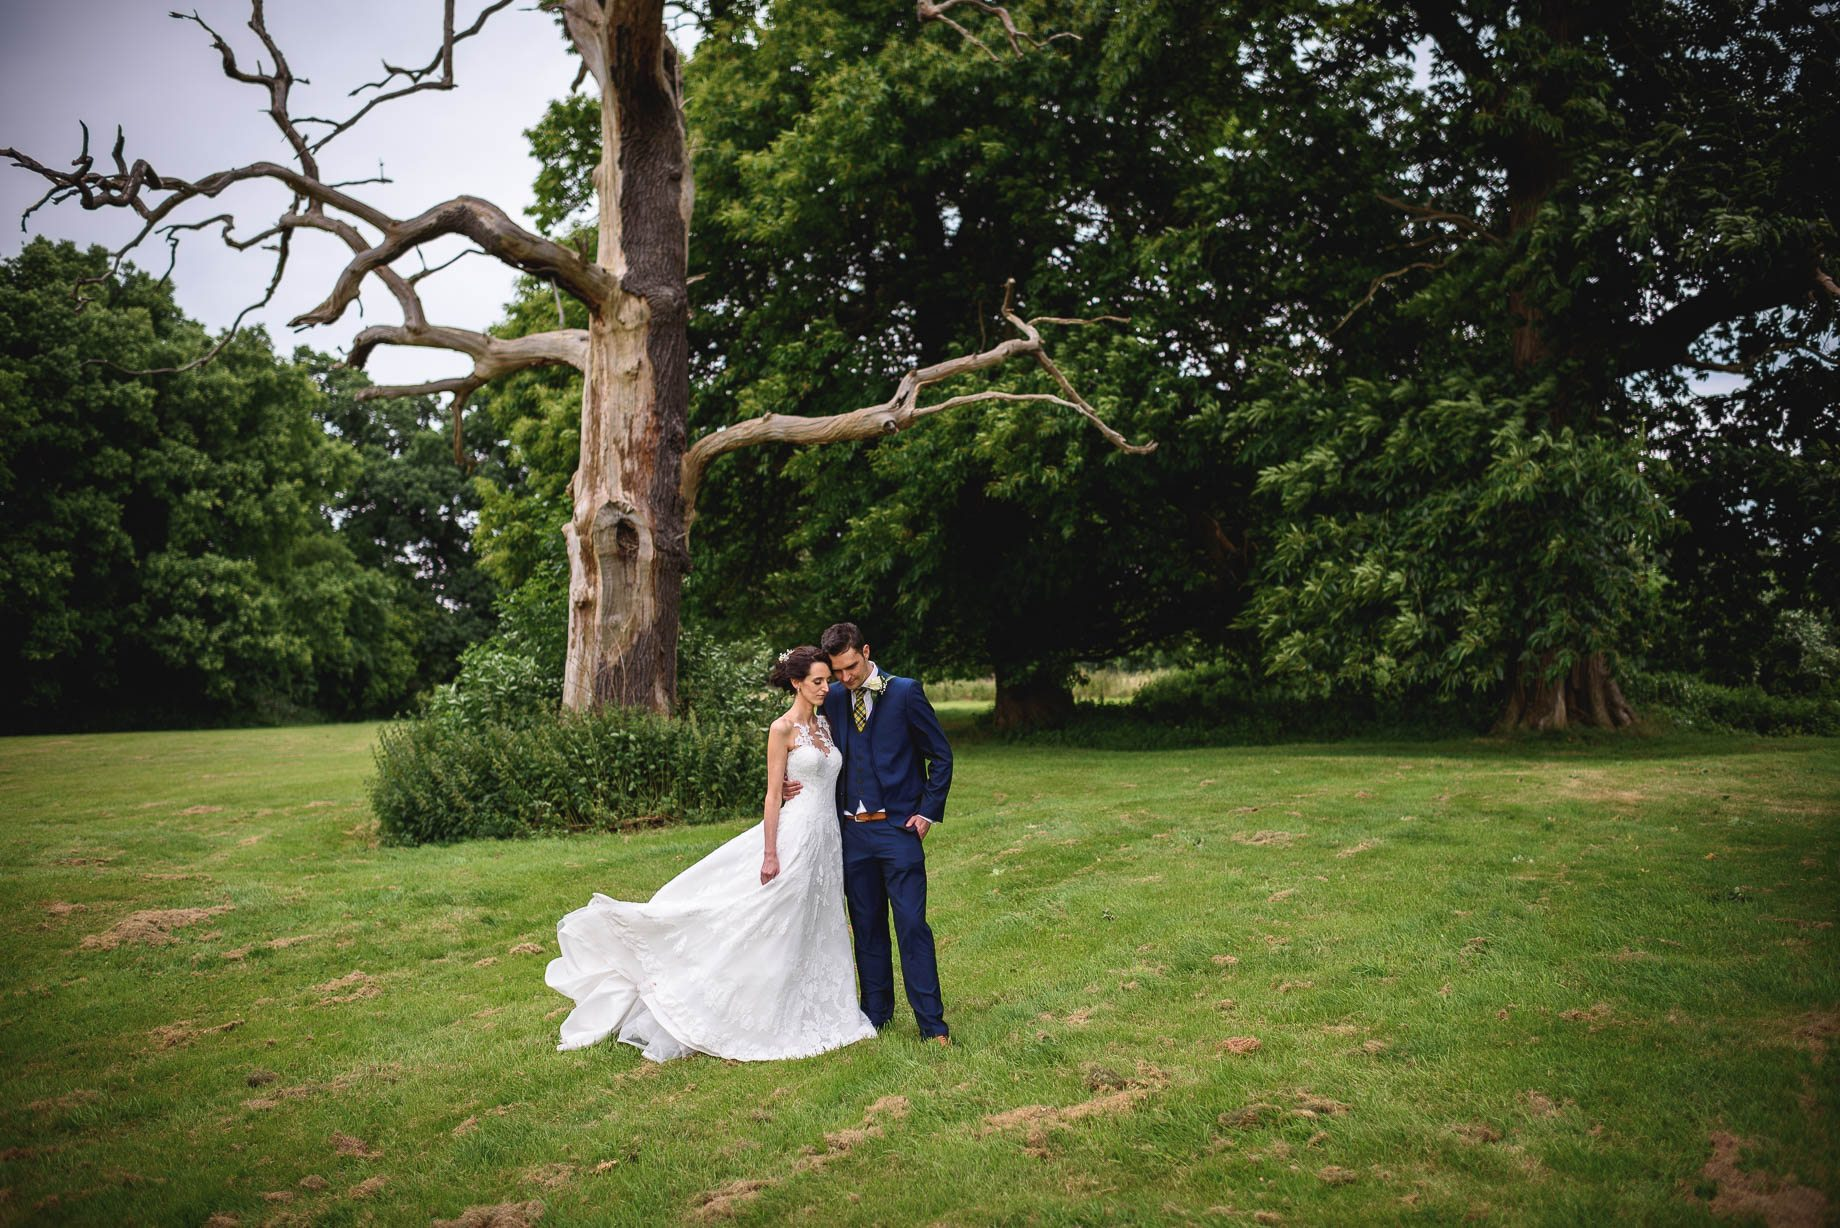 Hertfordshire wedding photography - Sarah and Stephen by Guy Collier Photography (147 of 161)